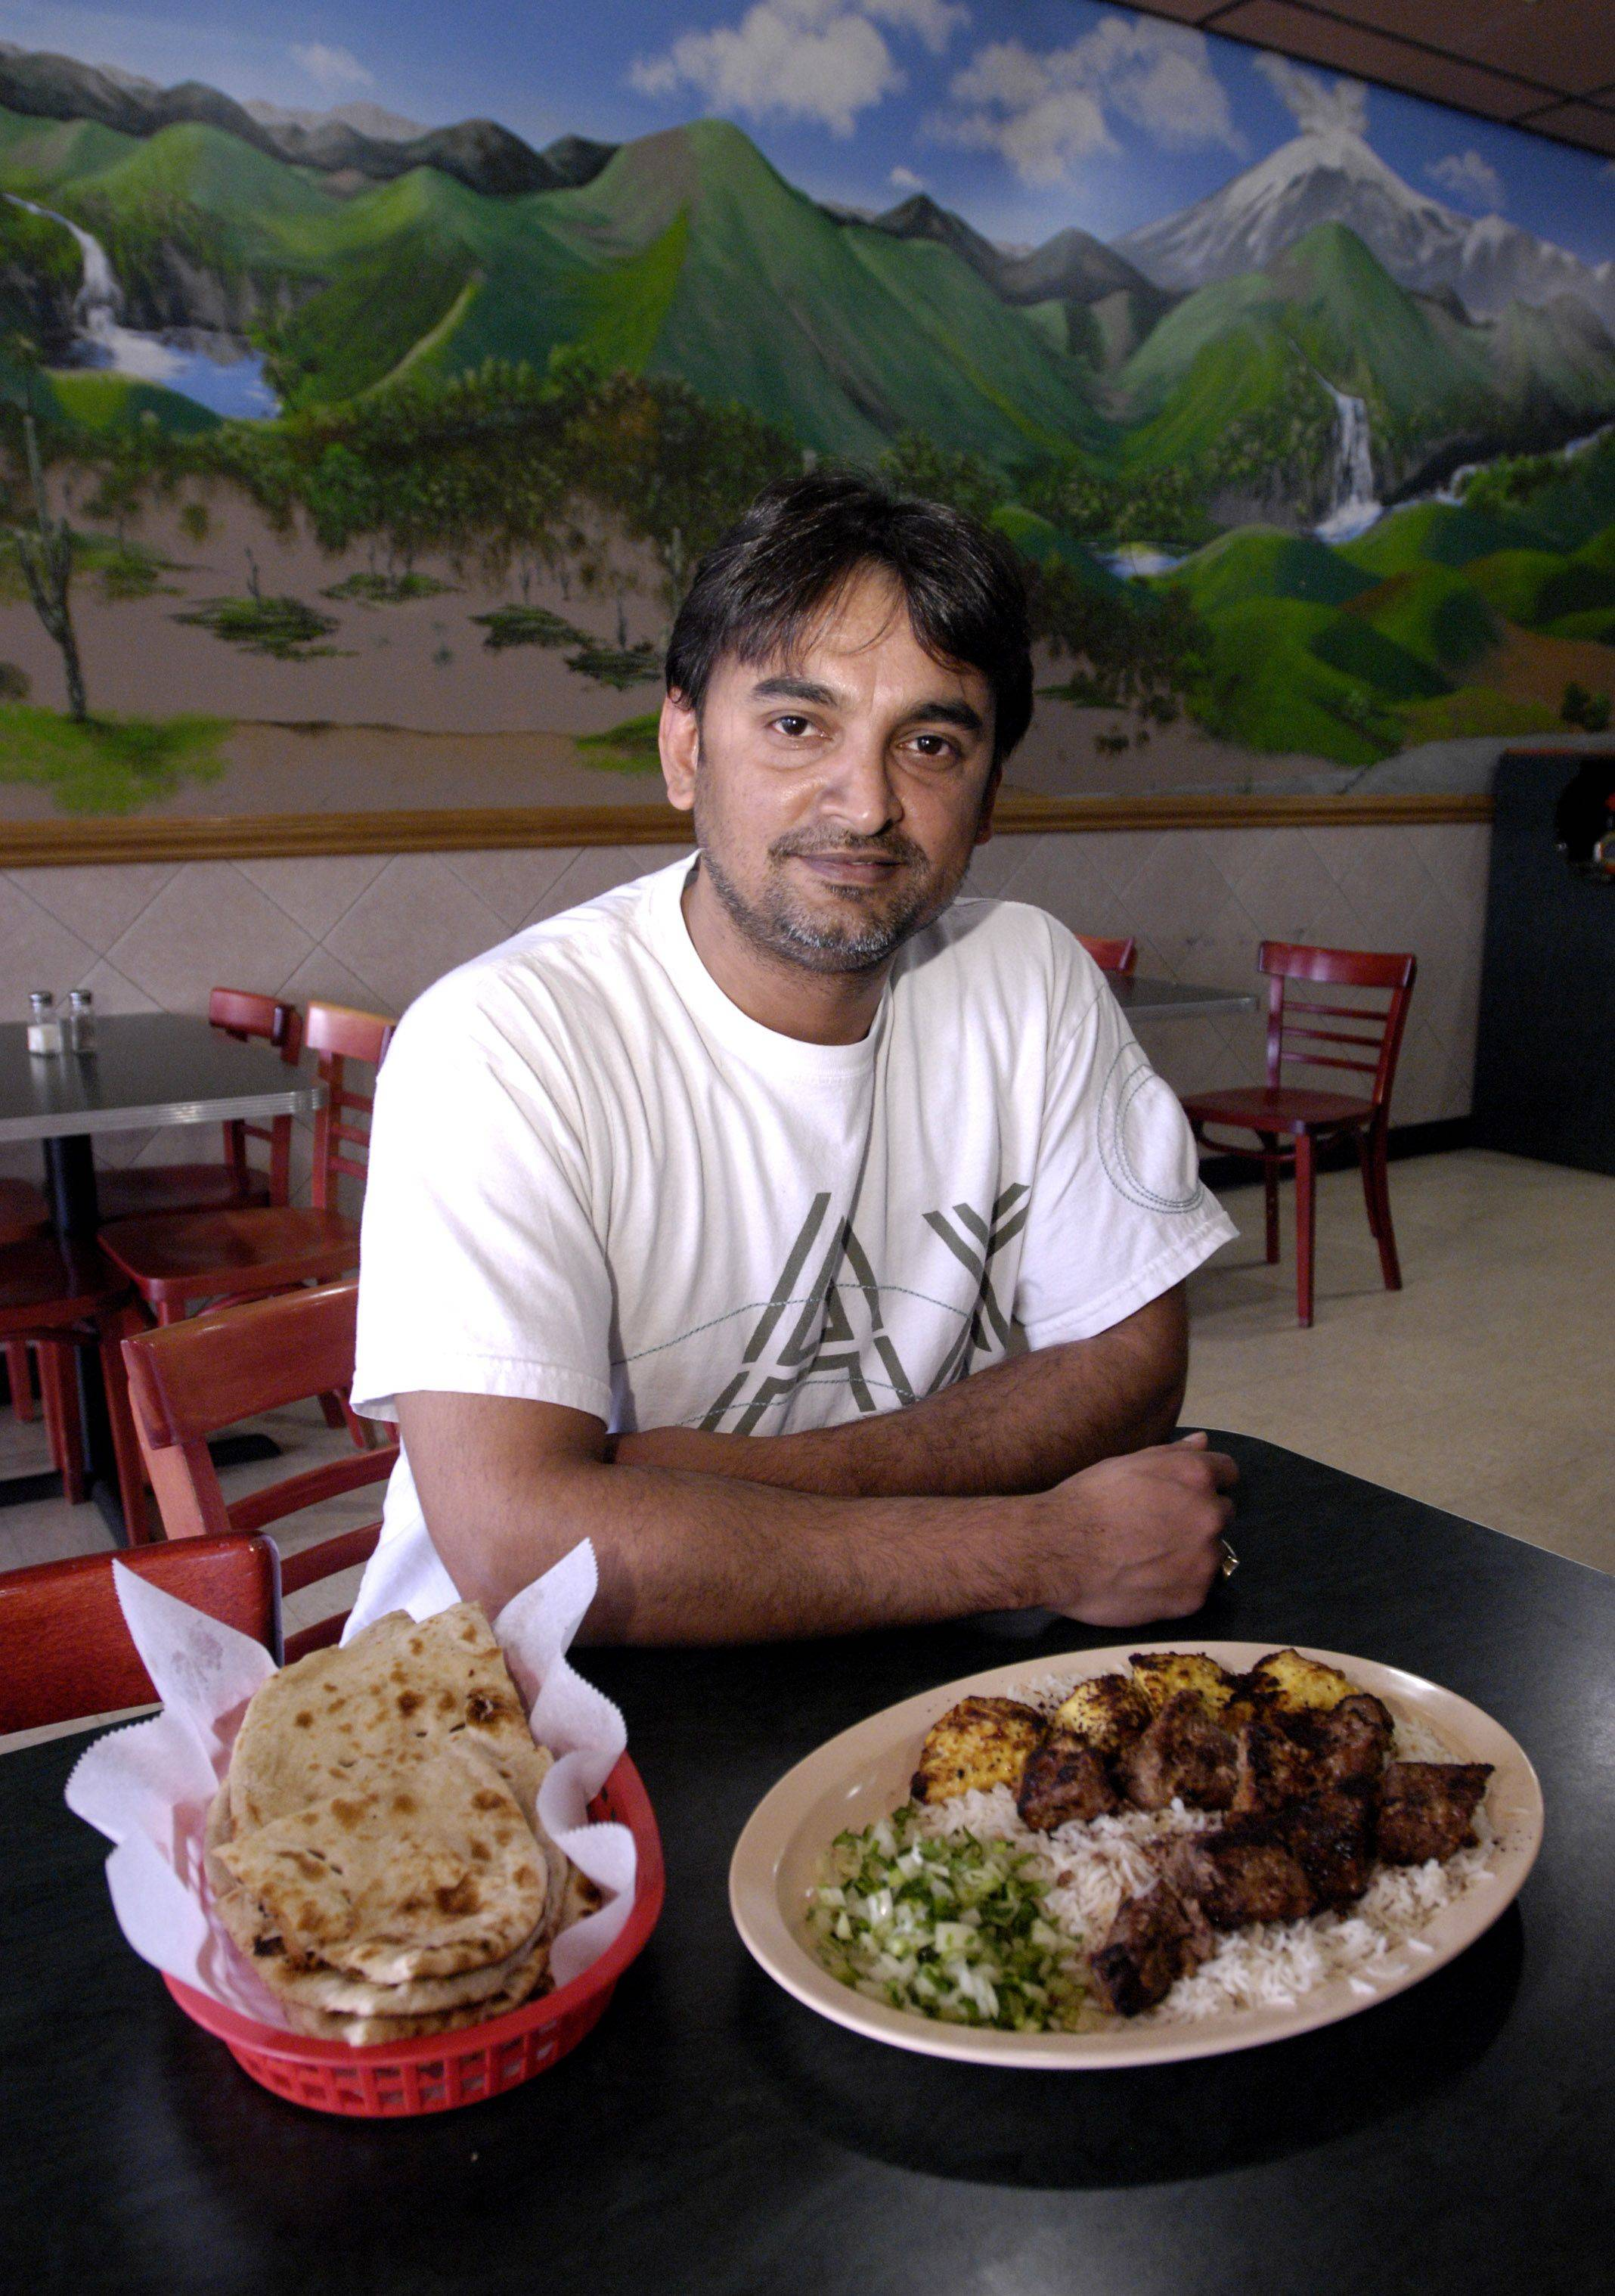 Monty Sayed, owner of Pita and Kabobz restaurant in Schaumburg, also has staged South Asian music concerts at the Sears Centre in response to the area's growing Asian population.